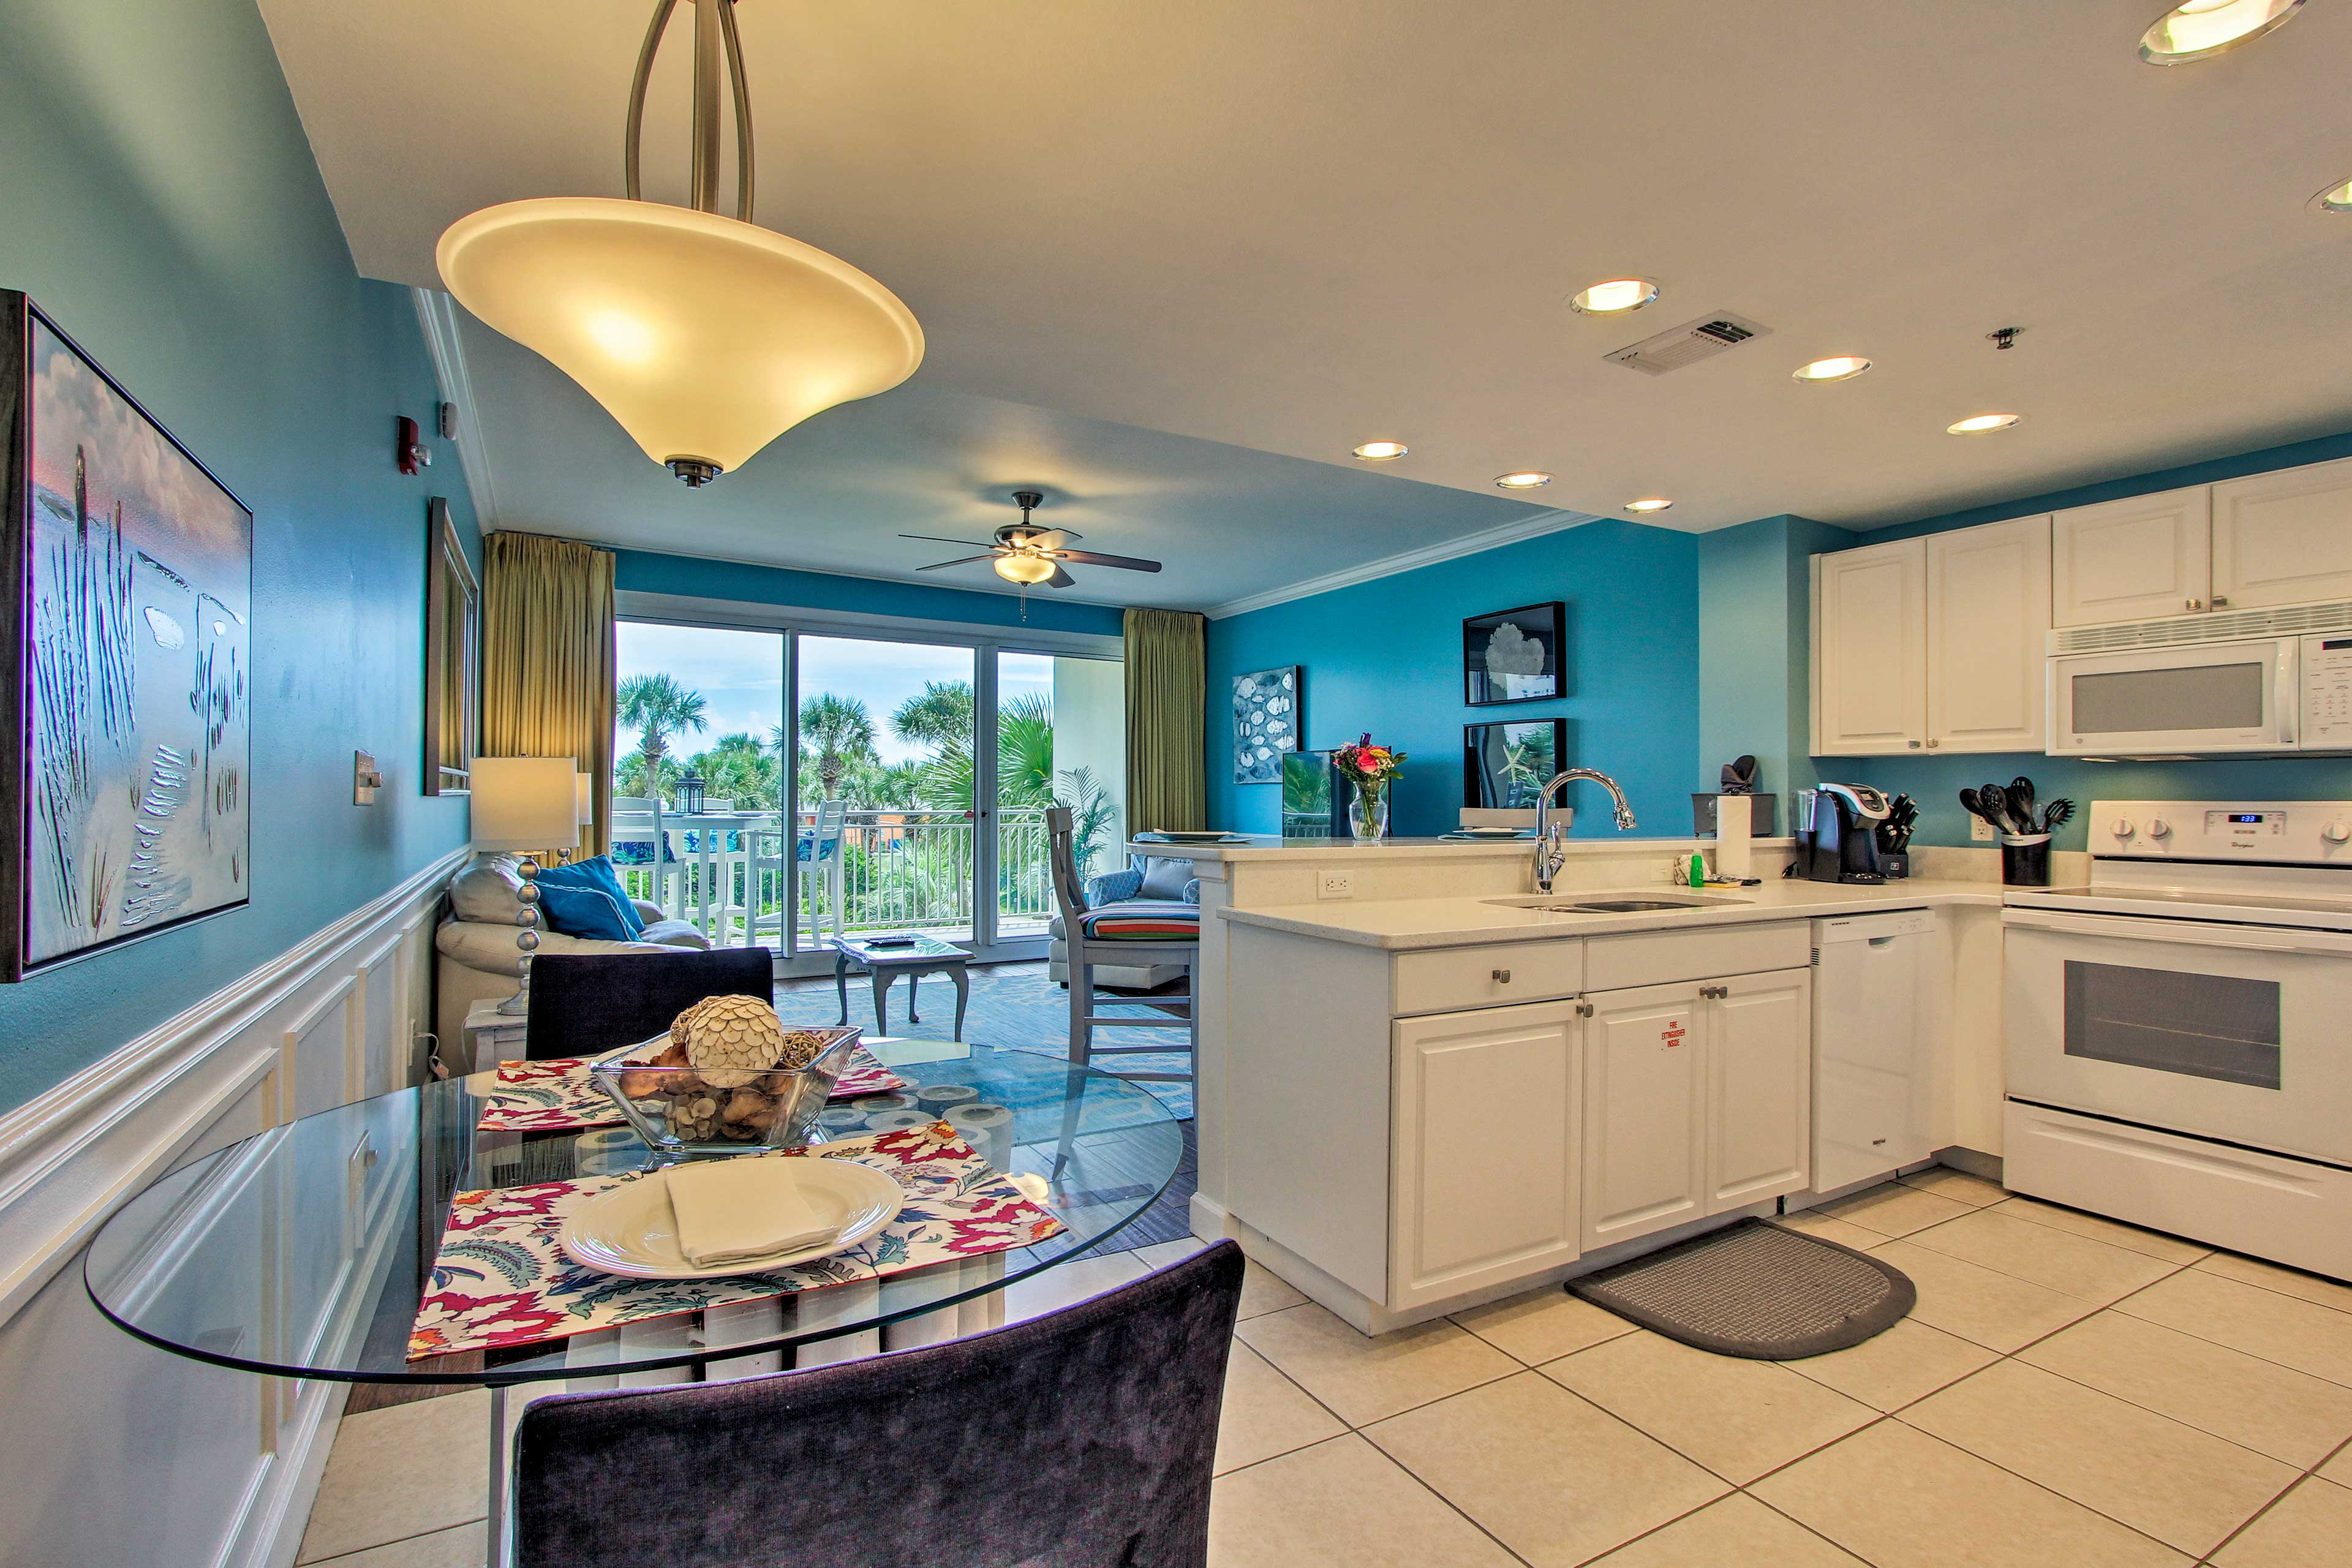 You'll have a full kitchen, breakfast bar, and lush palm tree-filled views!